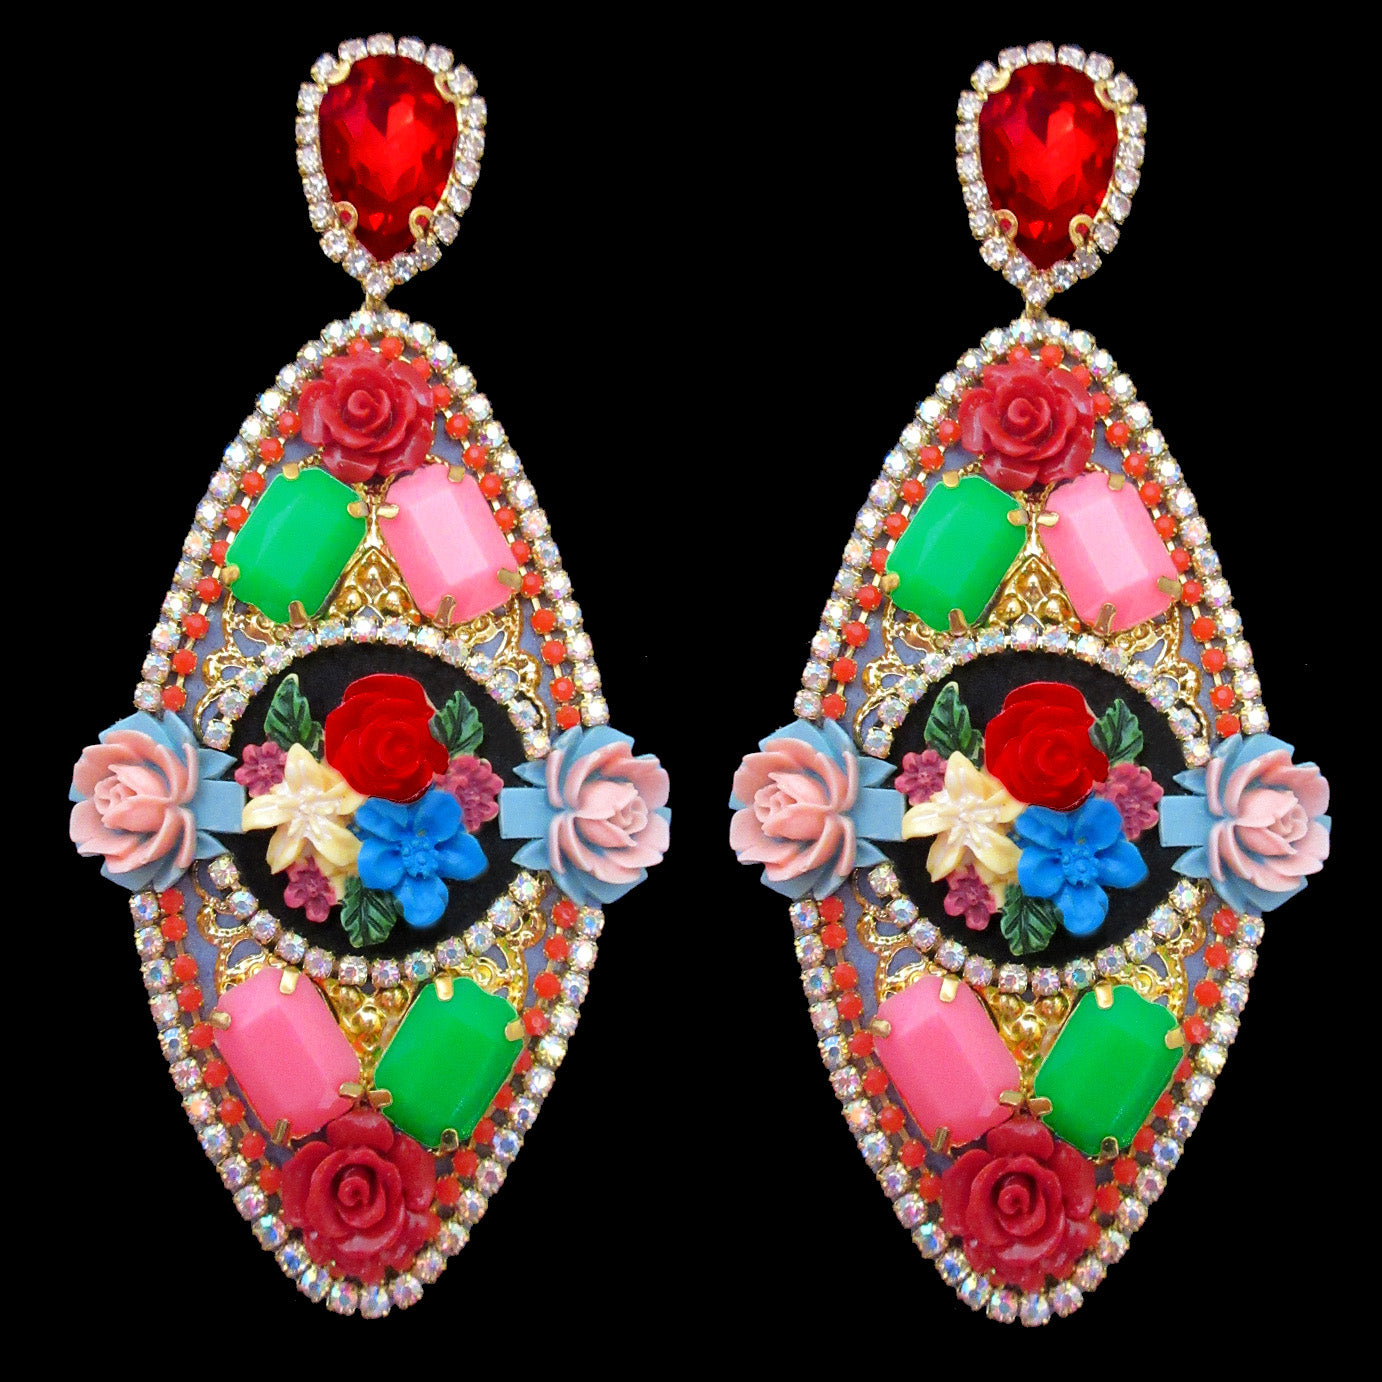 Mouchkine Jewelry haute couture floral pendant earrings. Ultra chic and trendy jewel made in france.